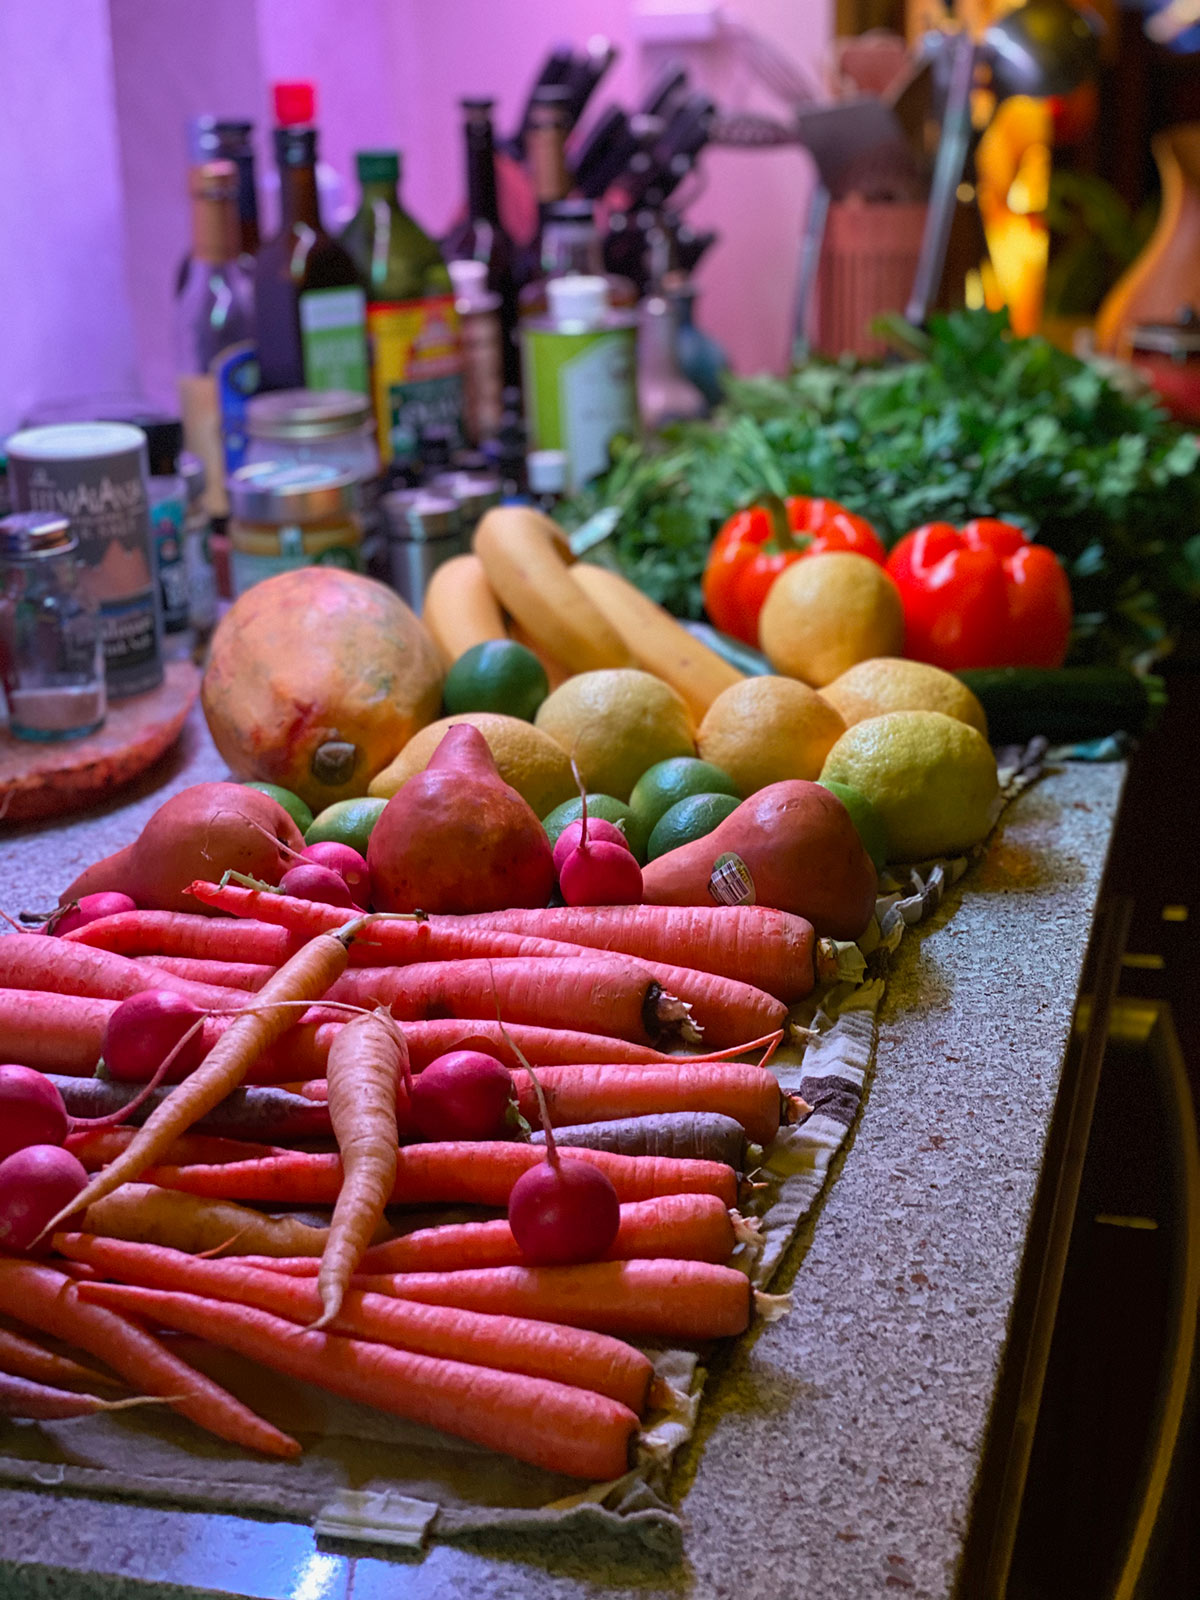 Vegetables and fruit photo